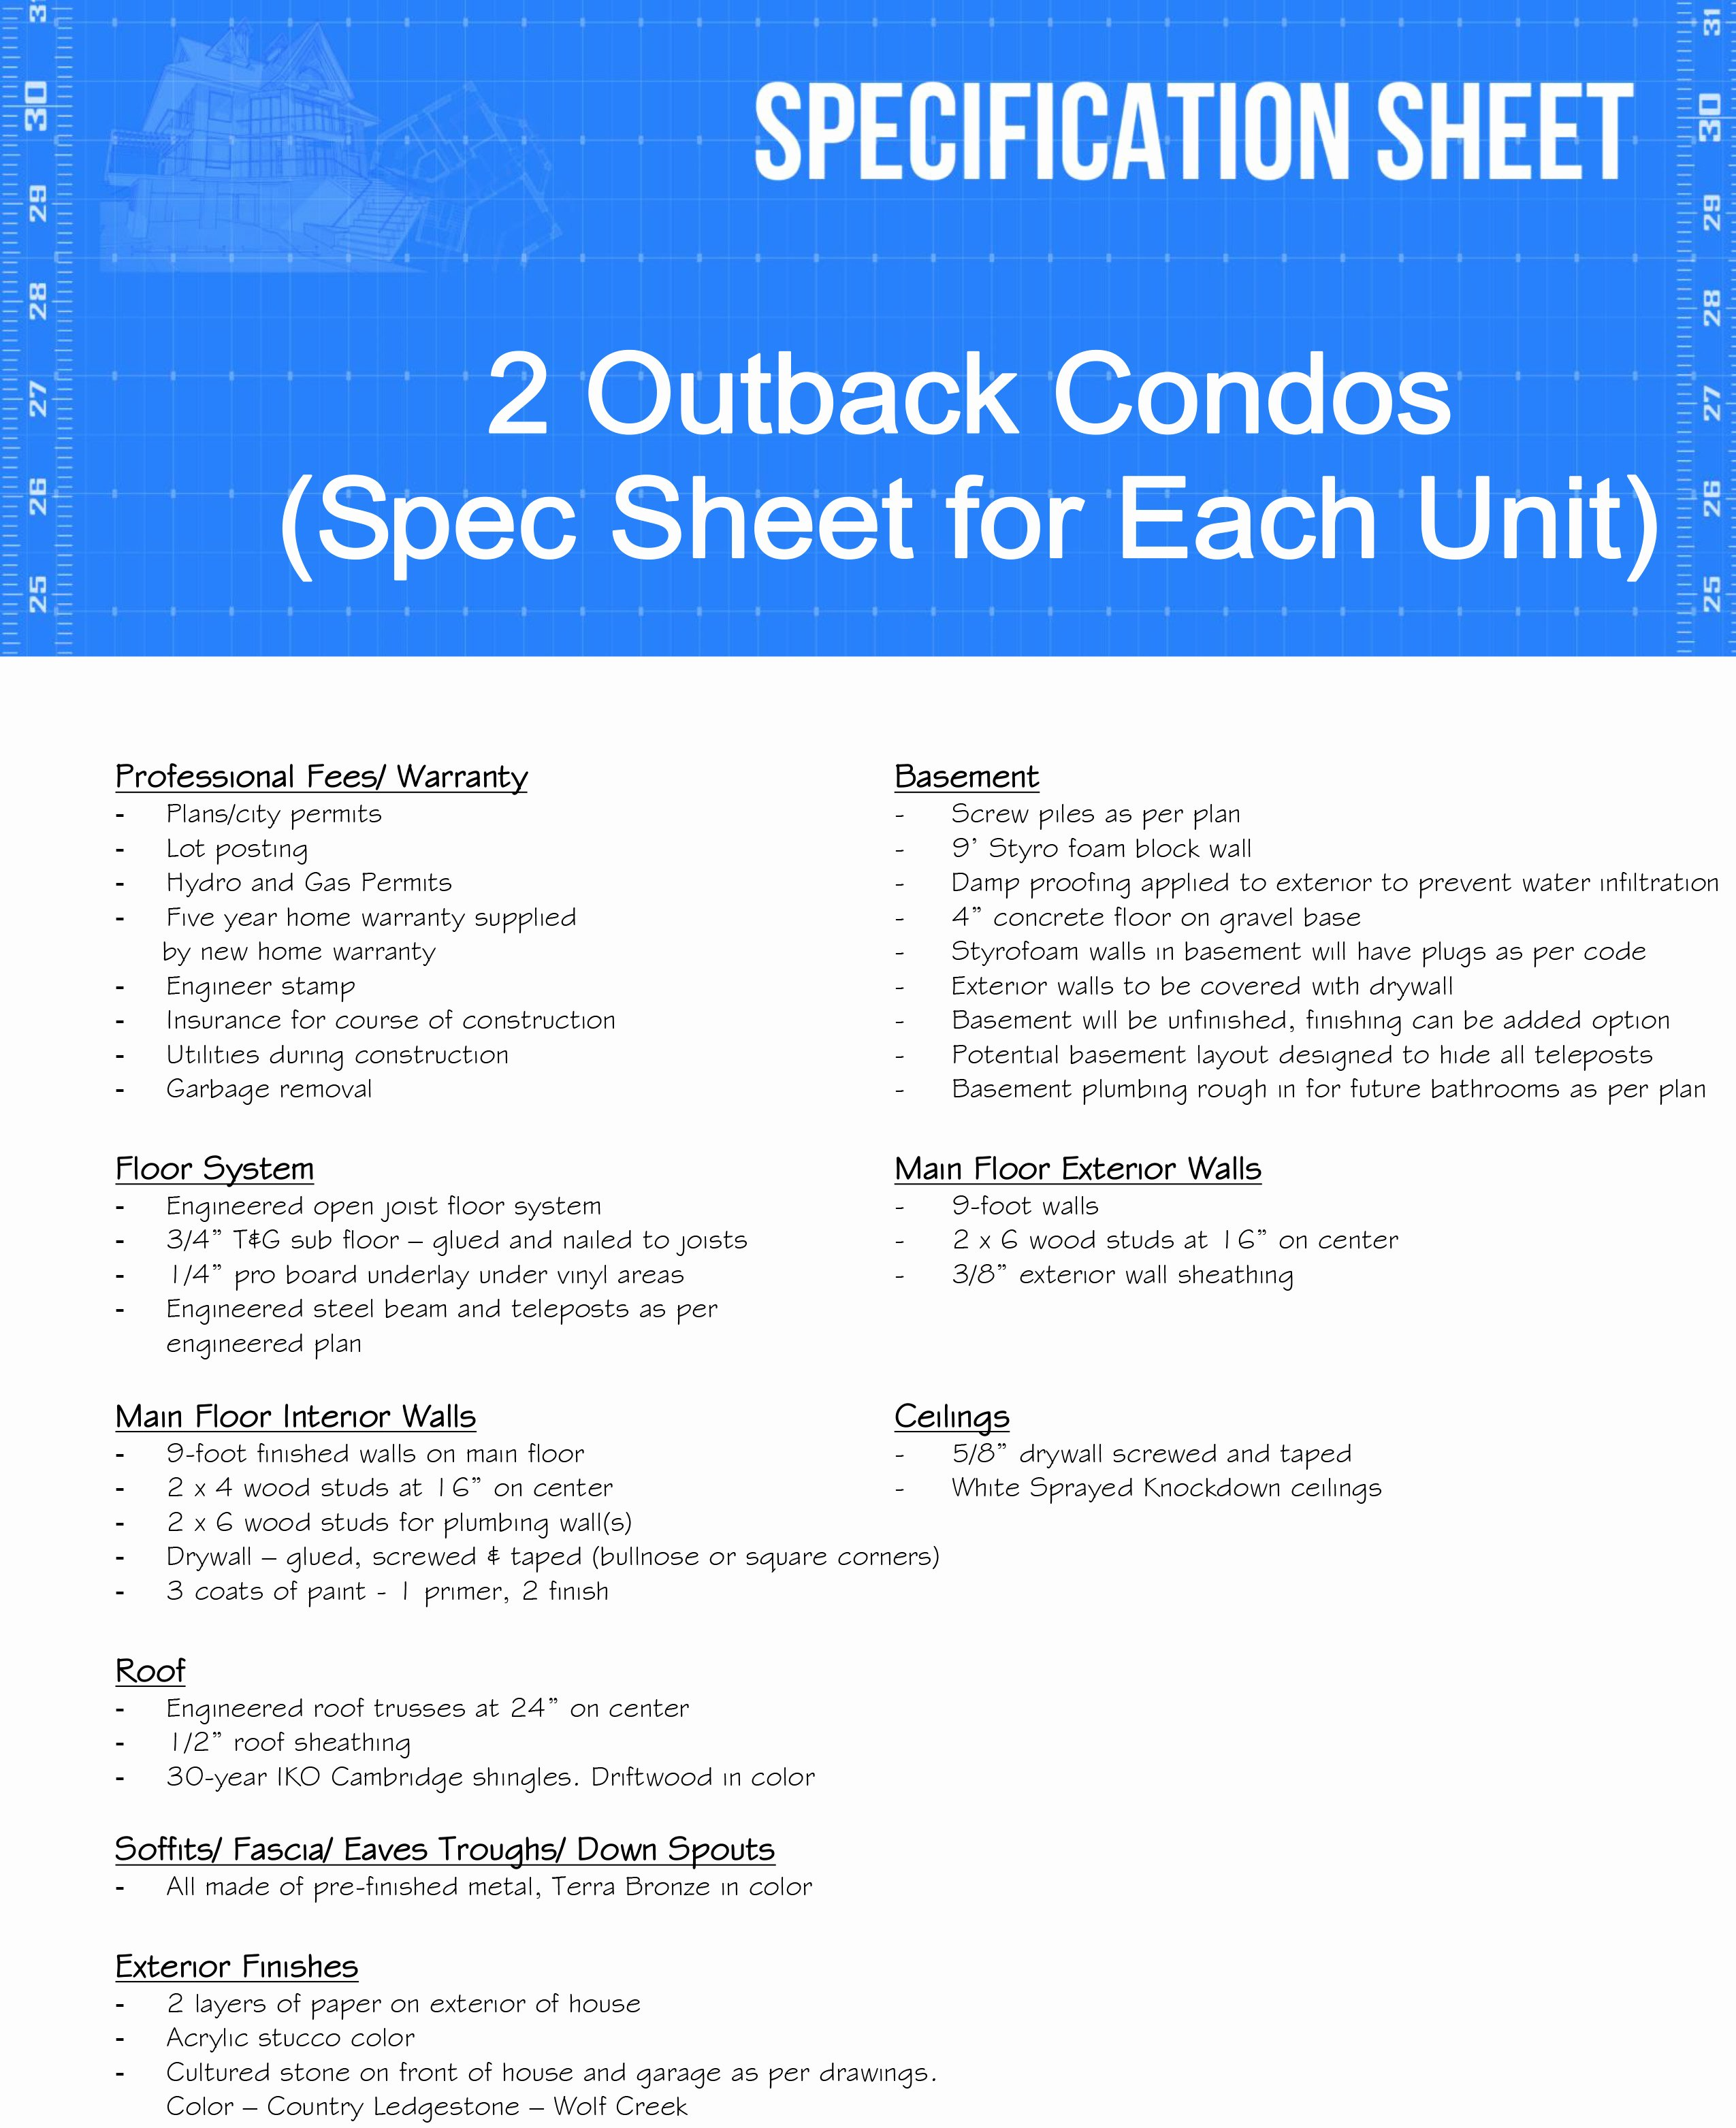 Builder Spec Sheet Template Beautiful 3 Questions to ask Residential Construction Spec Sheet